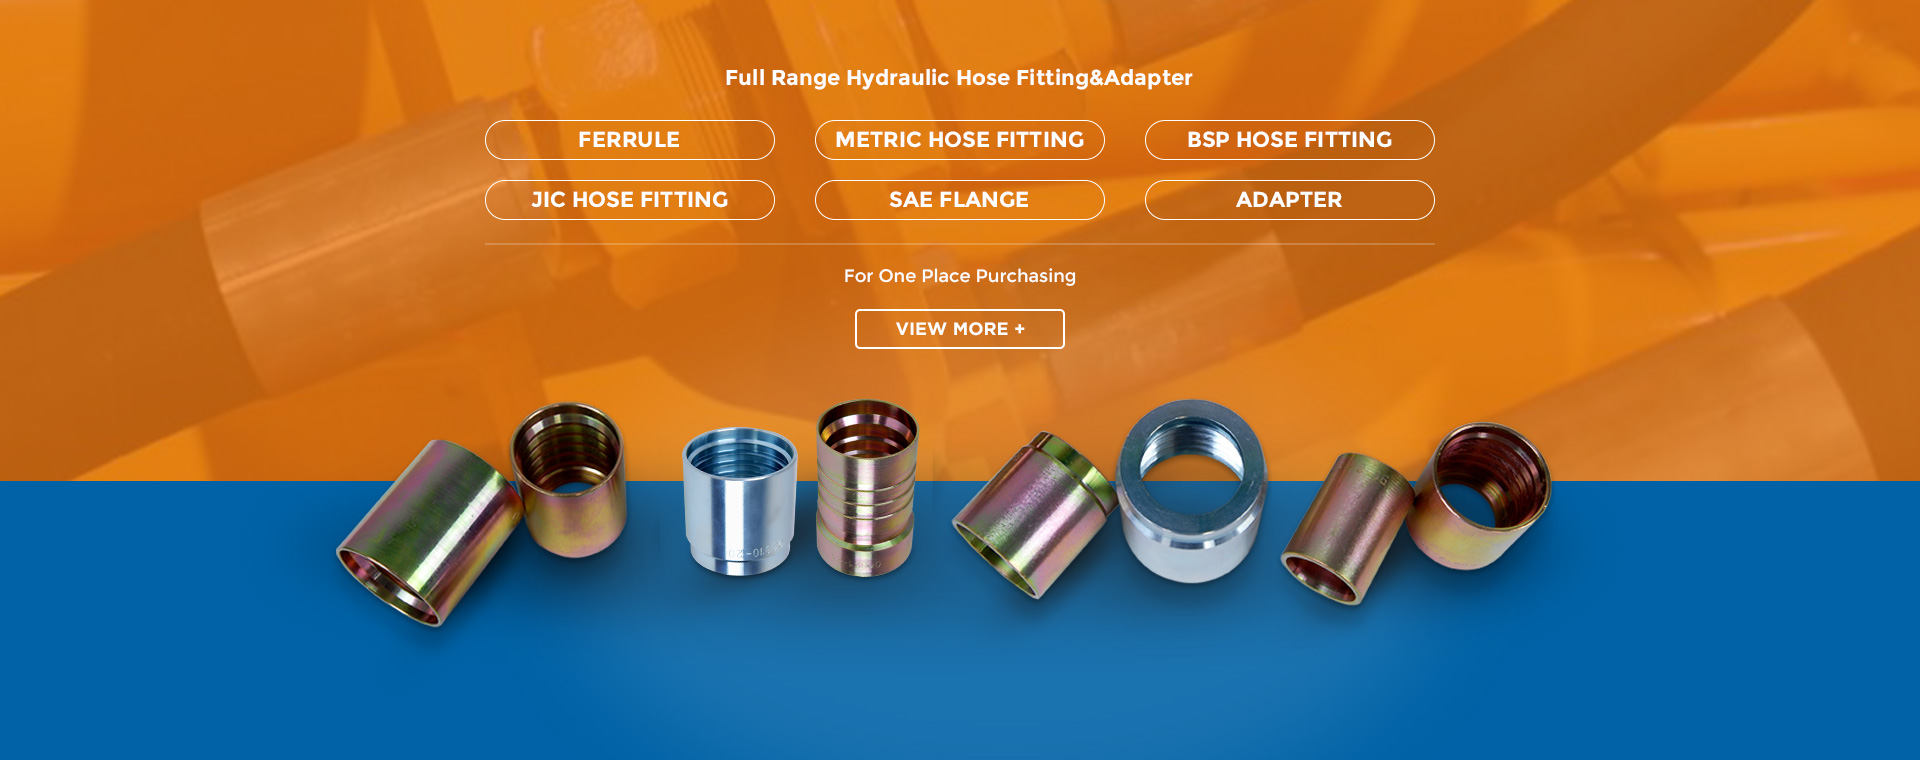 INTERLOCK HOSE FITTING